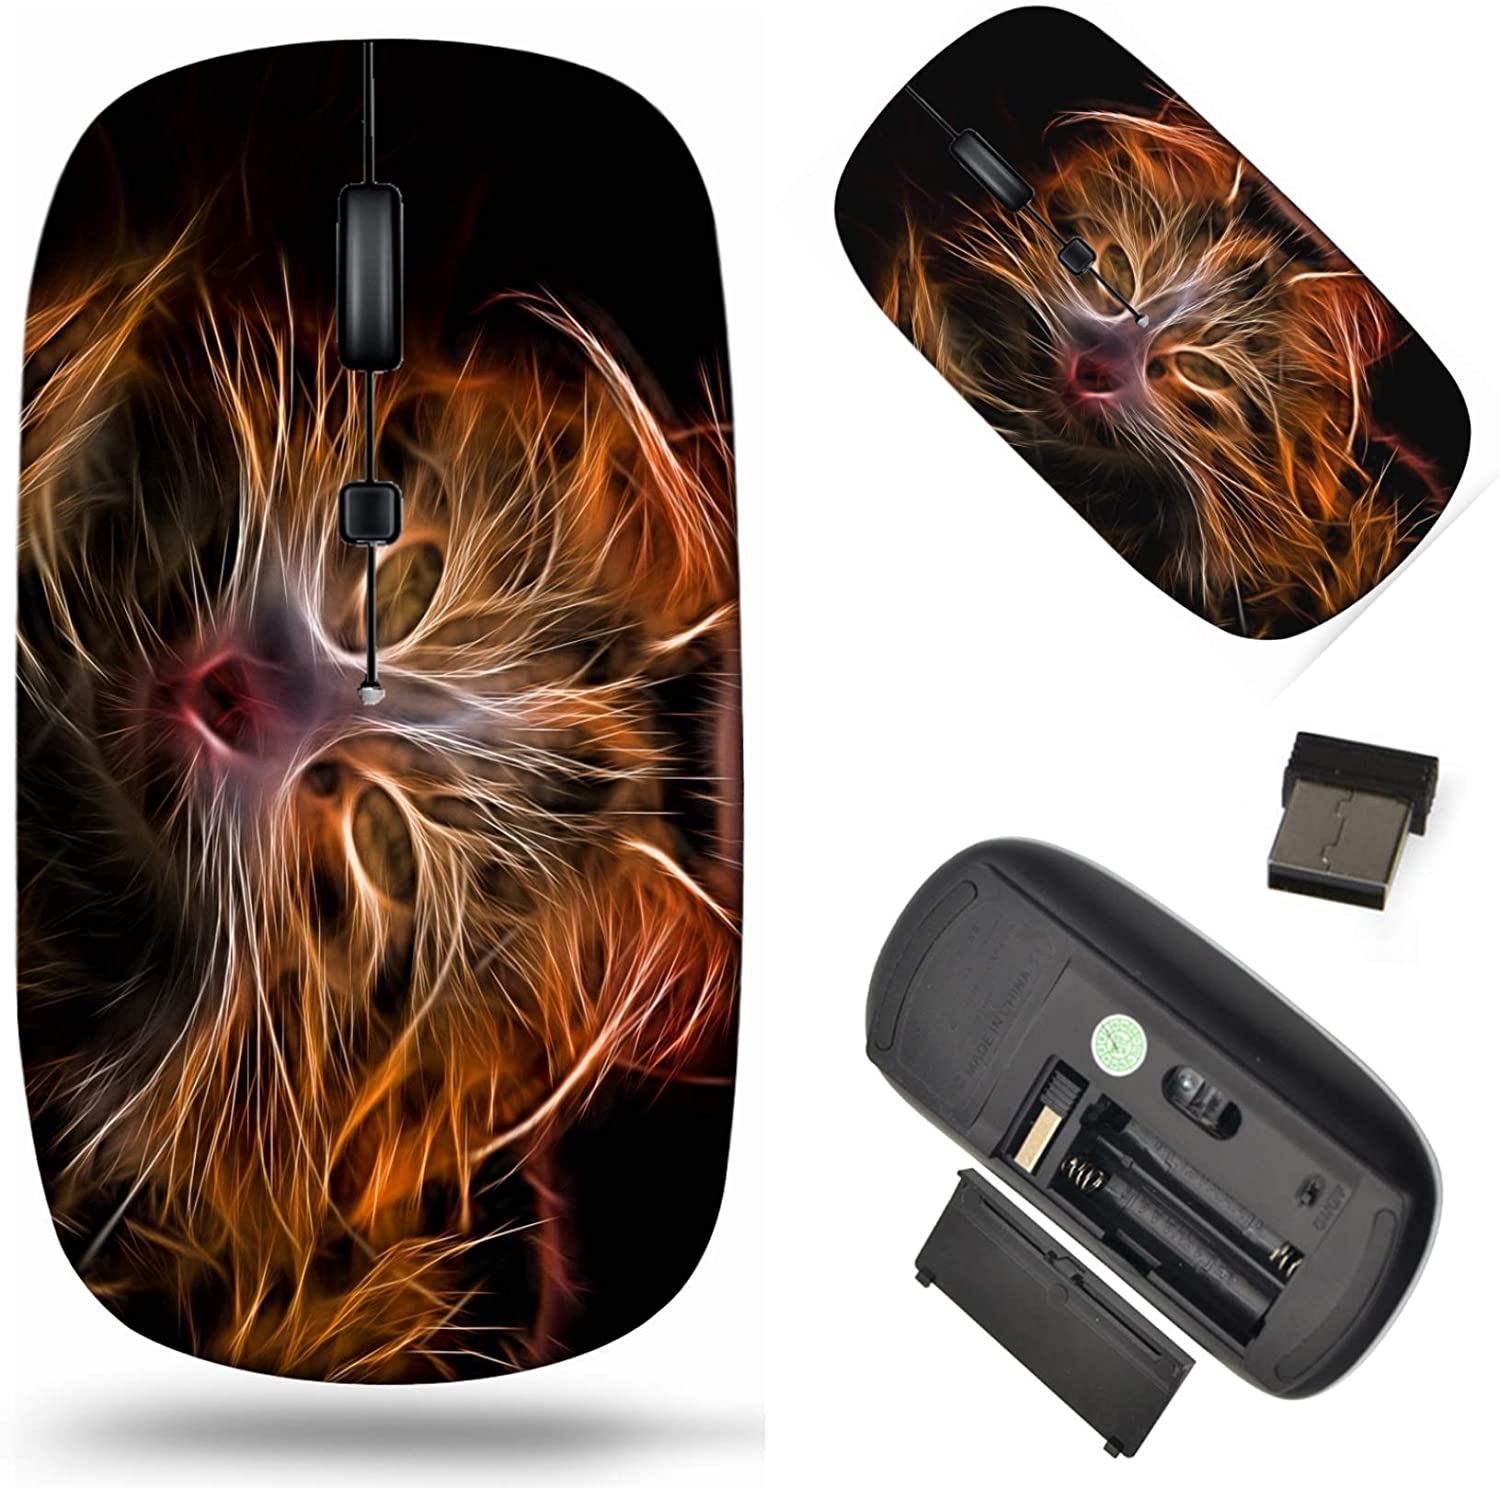 Wireless Computer Mouse Max 61% OFF 2.4G with Laptop Receiver Cor USB Max 68% OFF